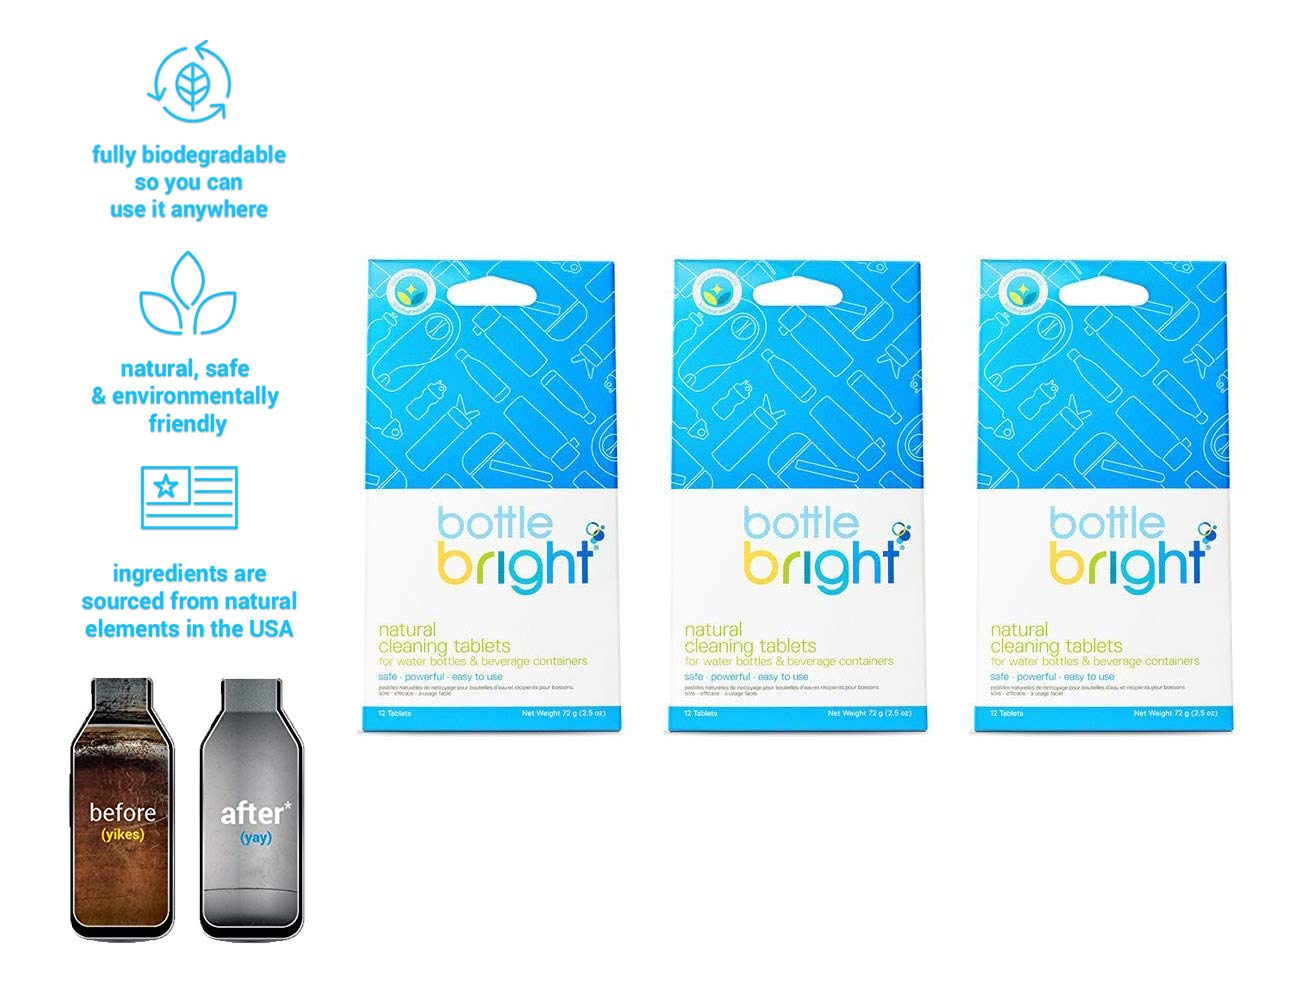 Bottle Bright 3 Pack (36 Tablets) - All Natural, Biodegradable, Chlorine & Odor Free Water Bottle & Hydration Pack Cleaning Tablets by BOTTLE BRIGHT